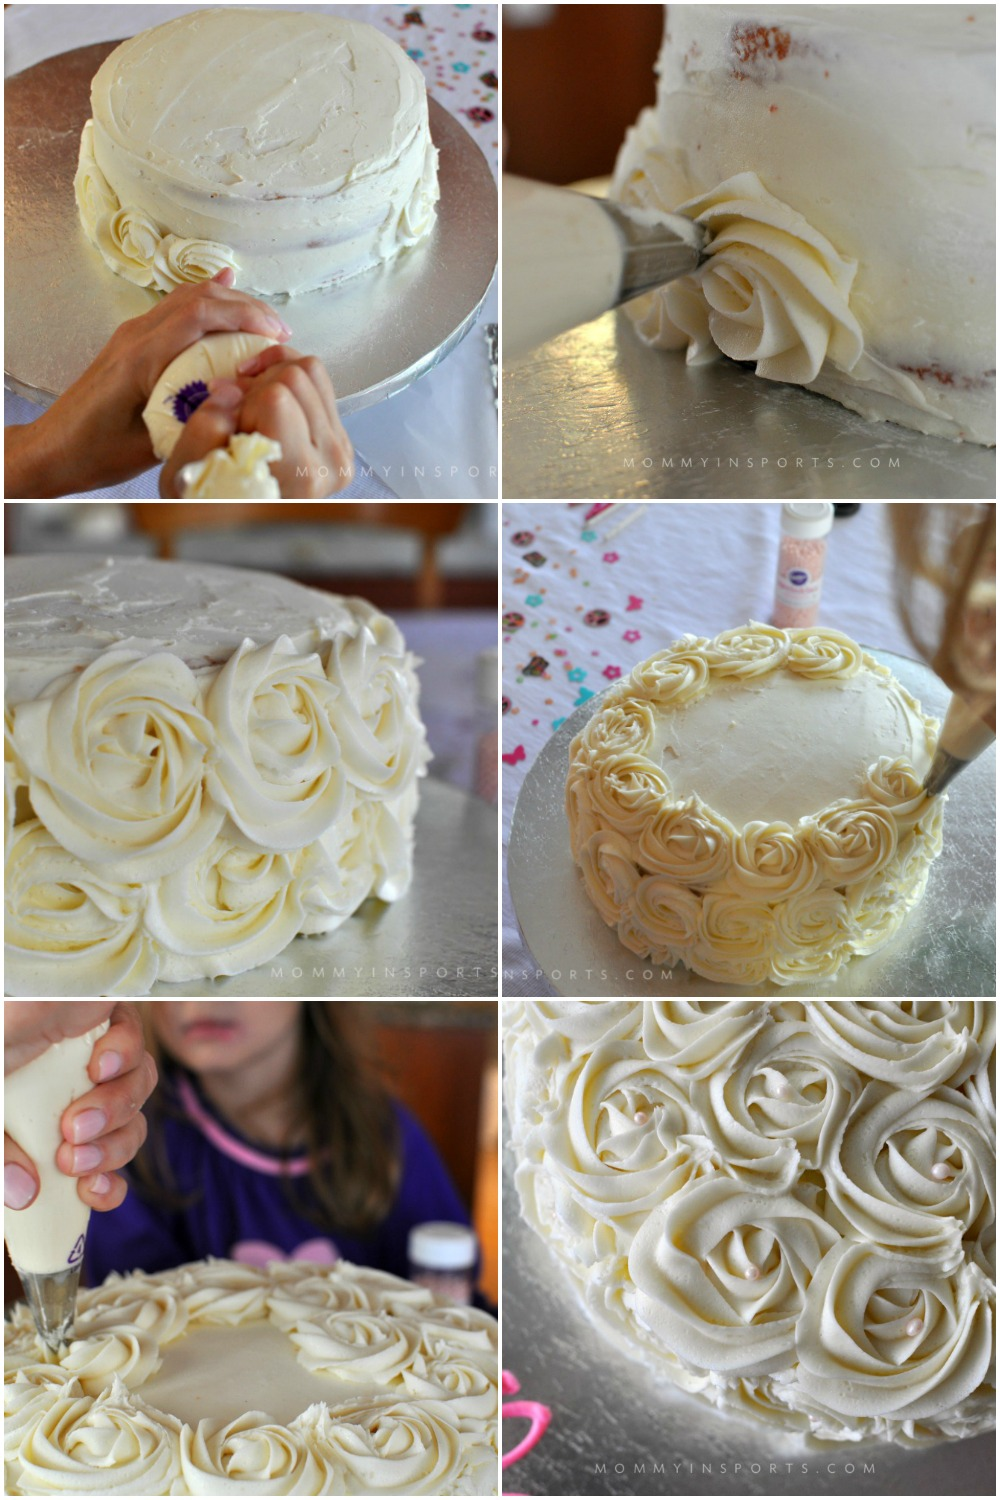 Always wanted to make a DIY rosette cake but afraid it would be too difficult?! Follow these simple steps and wow yourself and your crowd on the first try!